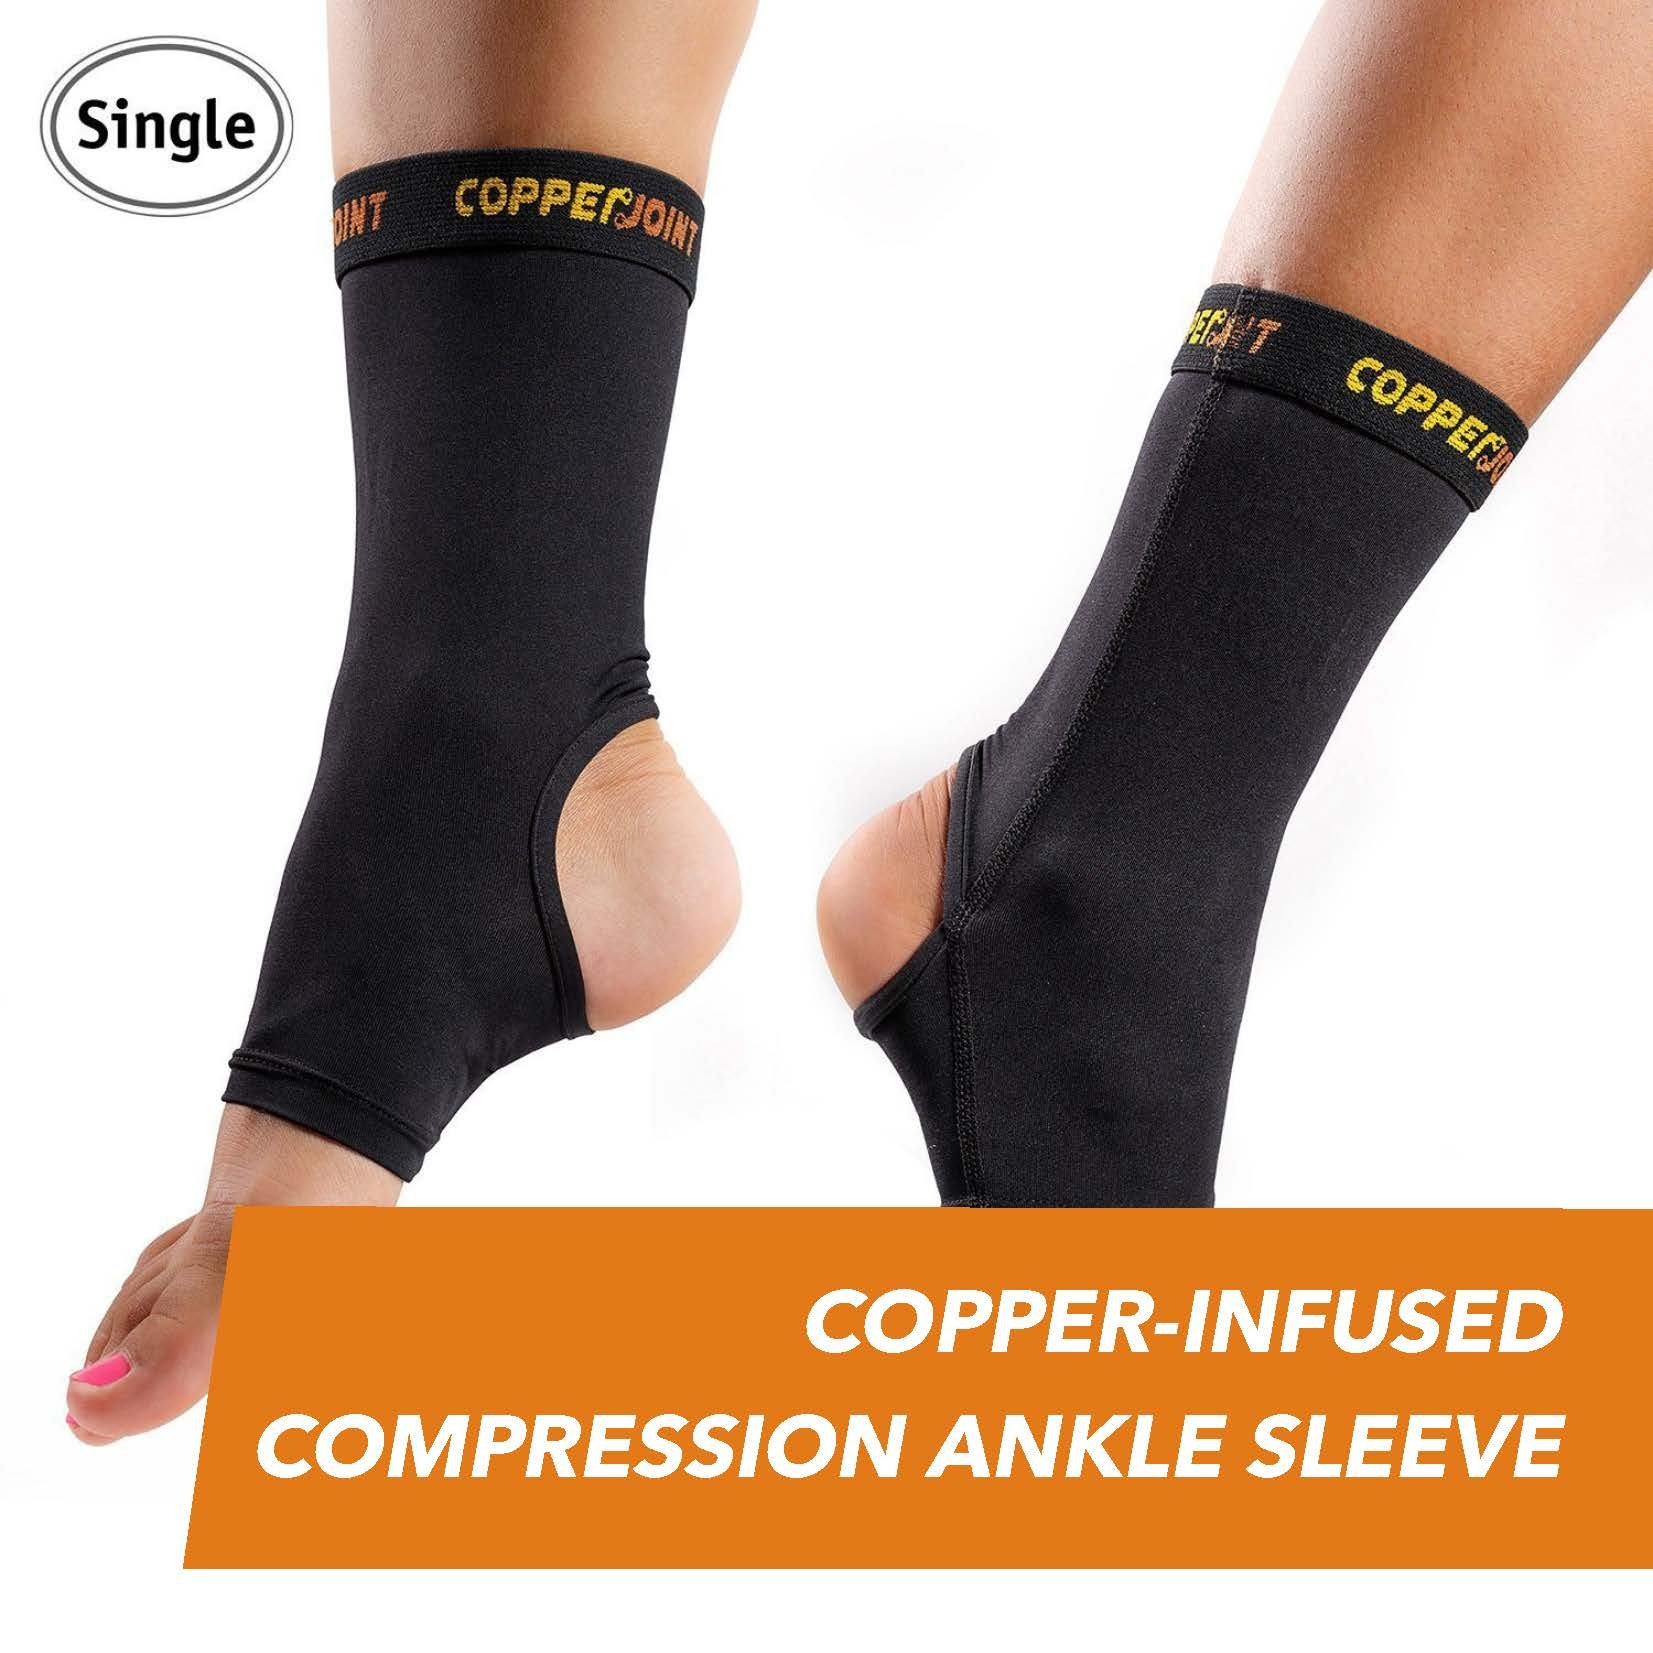 CopperJoint Copper-Infused Compression Ankle Sleeve, High-Performance, Breathable Design Provides Comfortable and Durable Joint Support for All Lifestyles, Single Sleeve (Medium)